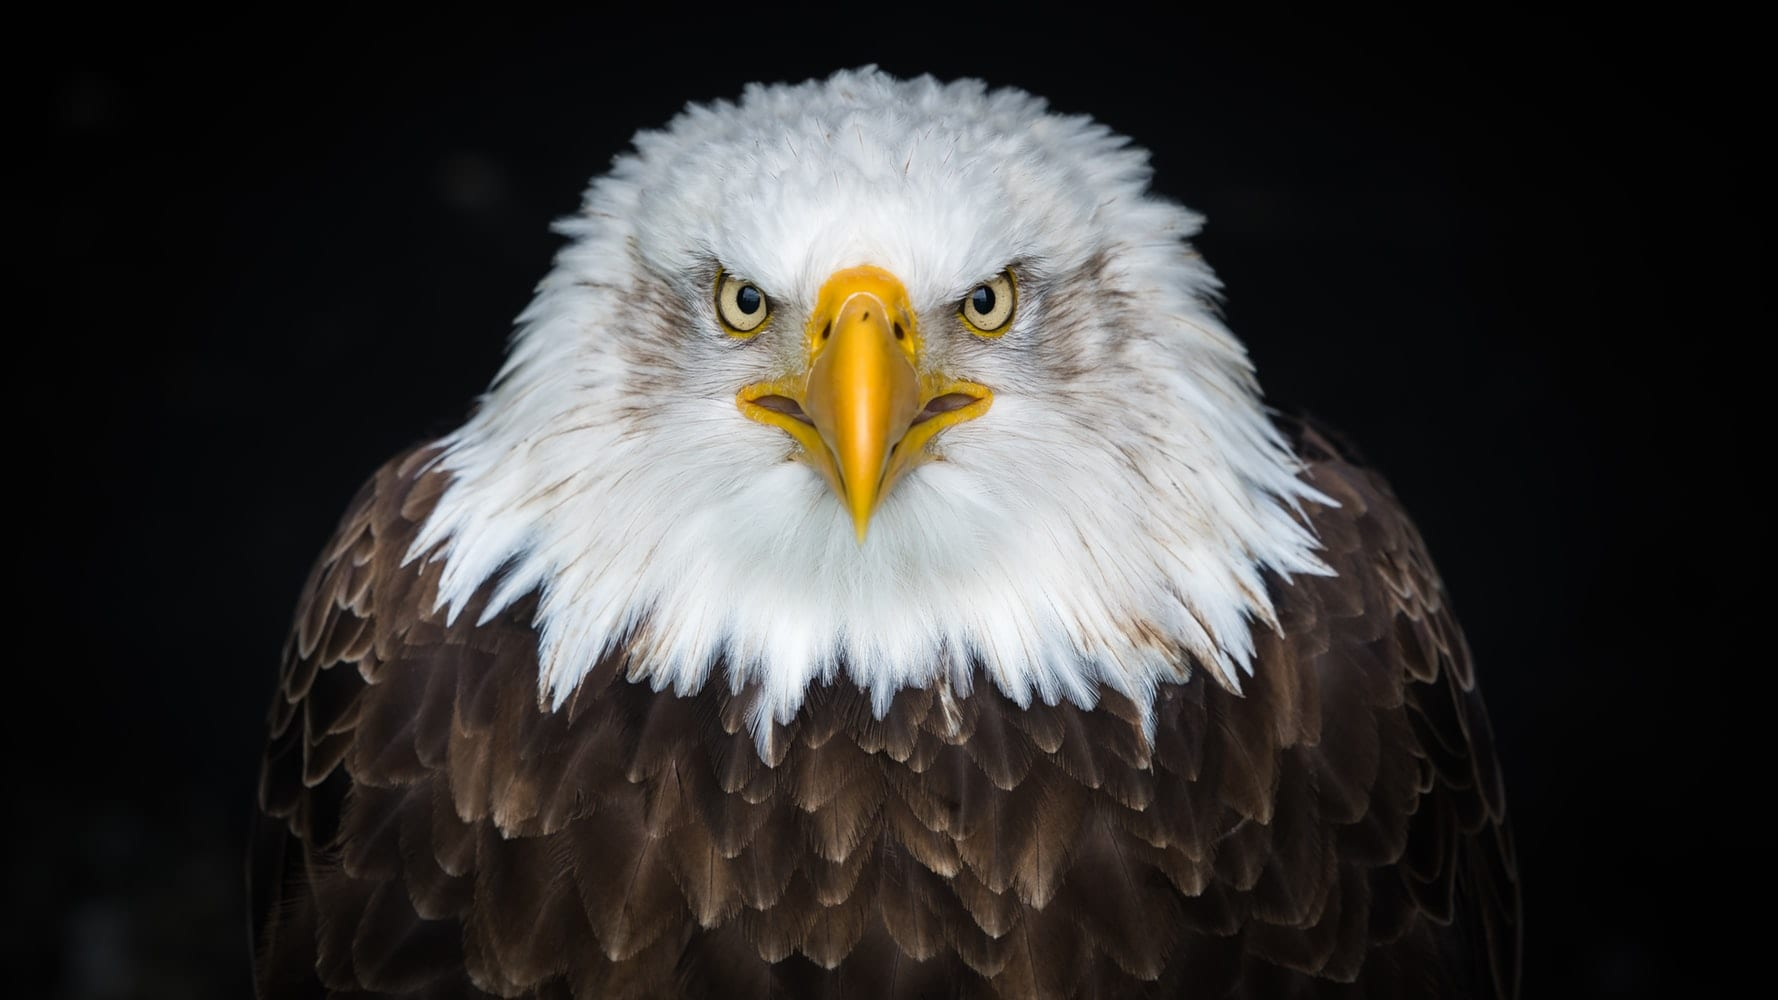 A bald eagle facing the camera, with a dark background.